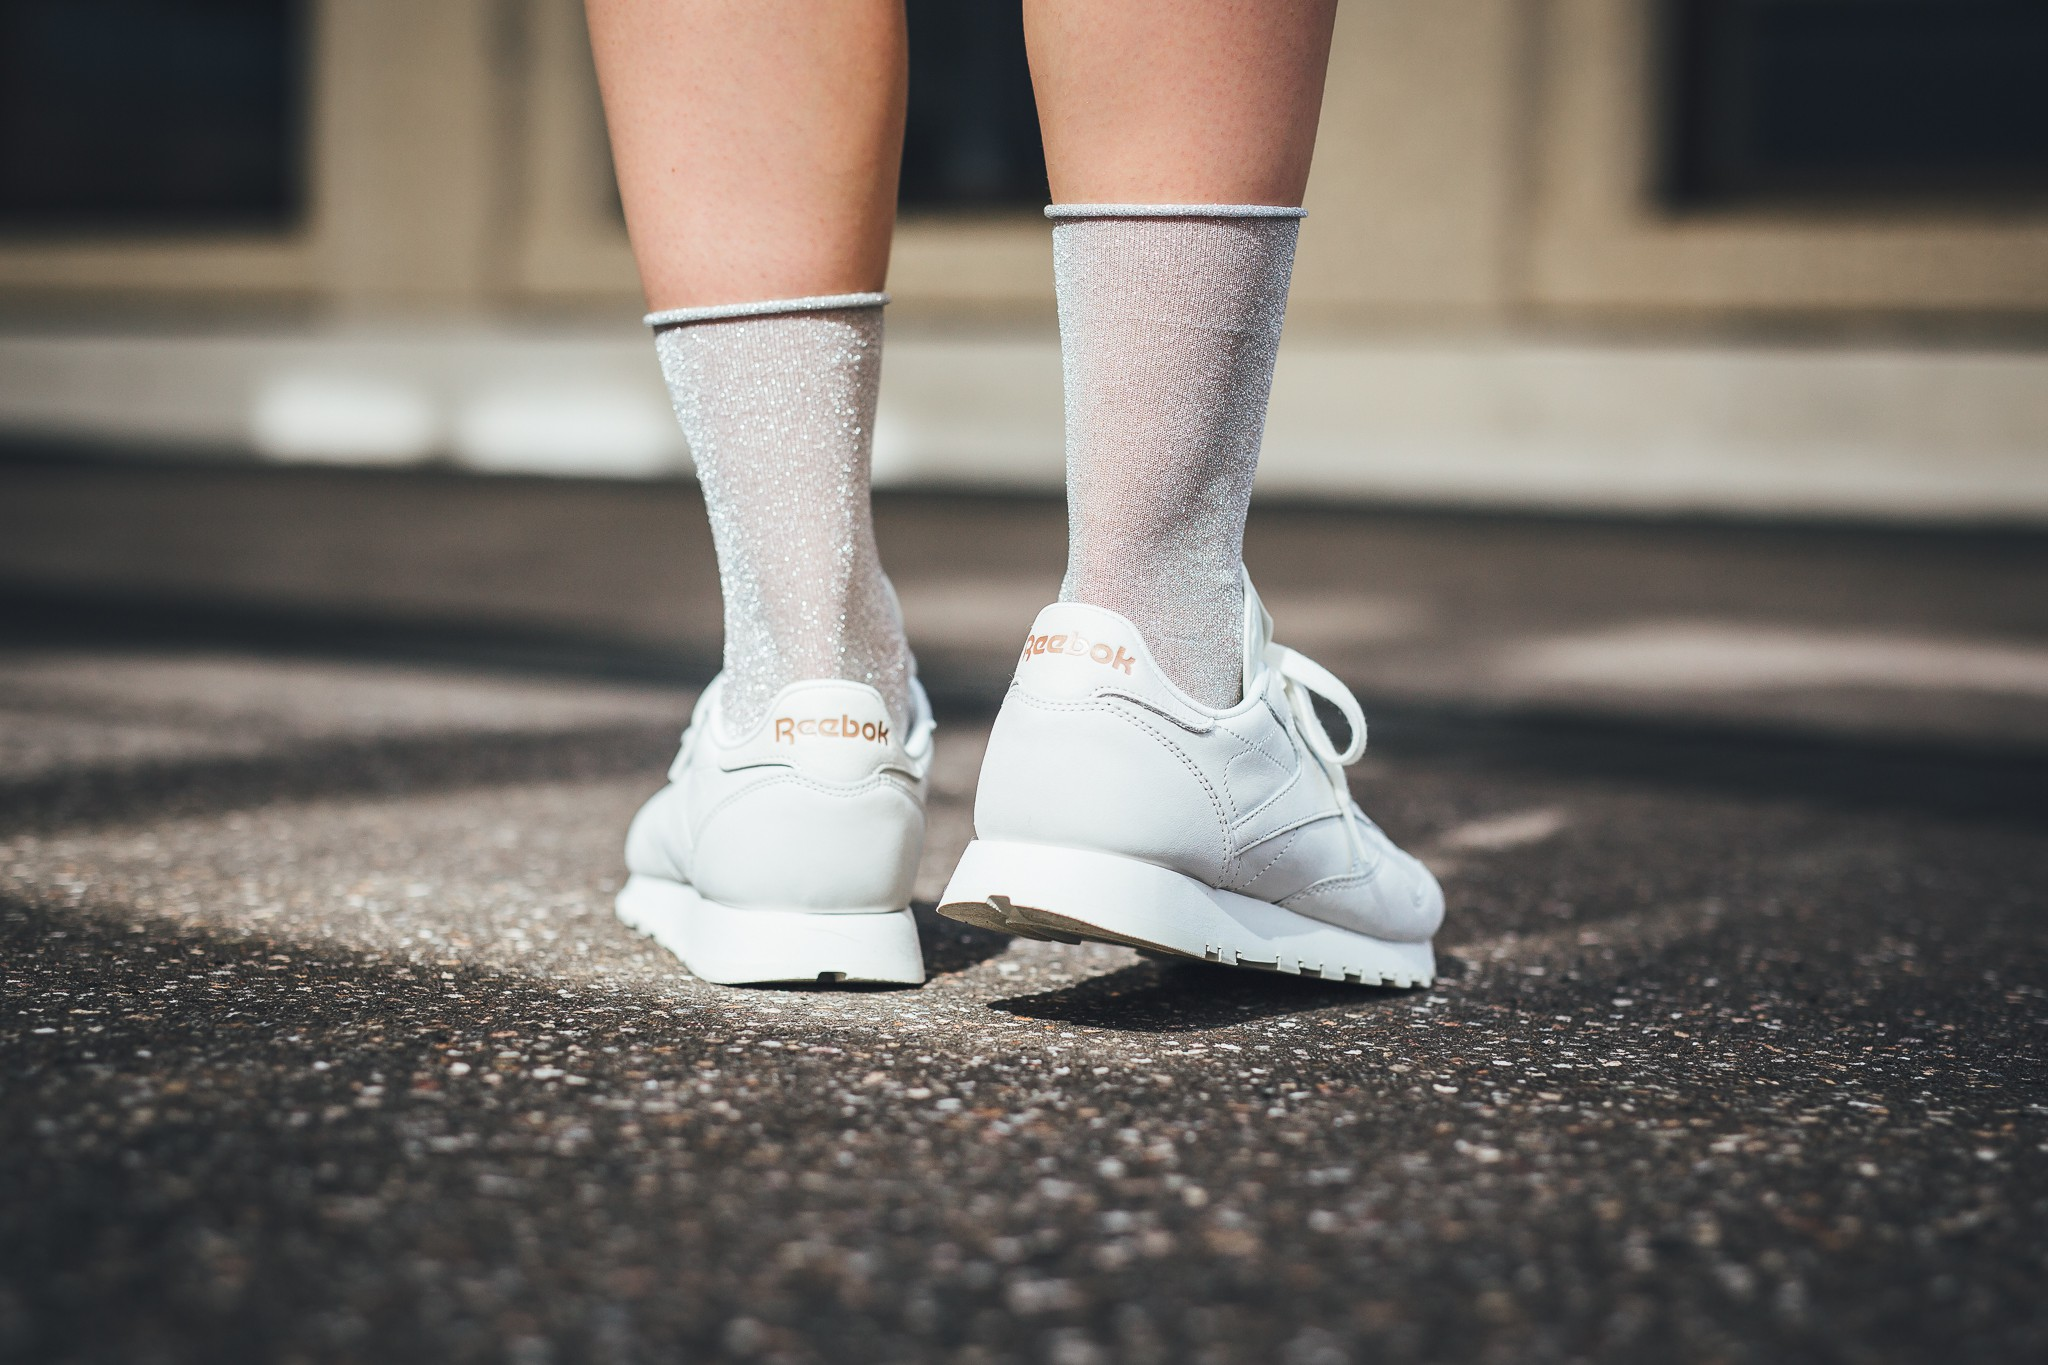 634da3a10d6 Cop or Can  Reebok Classic Leather FBT Suede In  White Rose Gold  — CNK  DailyChicksNKicks